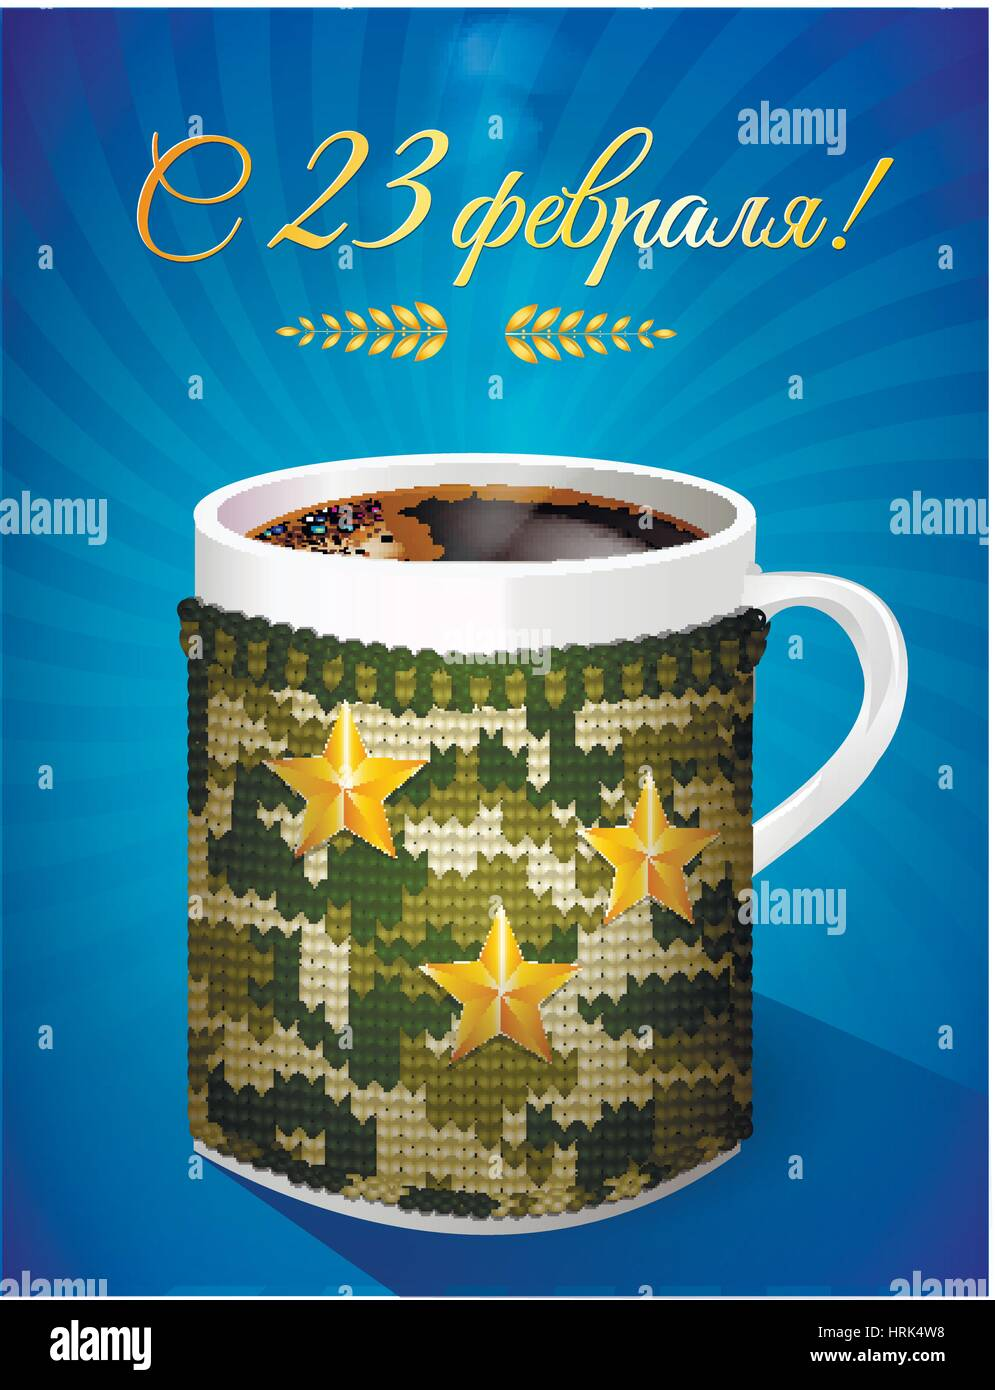 Greeting card on February 23. Mug of coffee in the men, knit cover background  with a pattern camouflage military. - Stock Vector